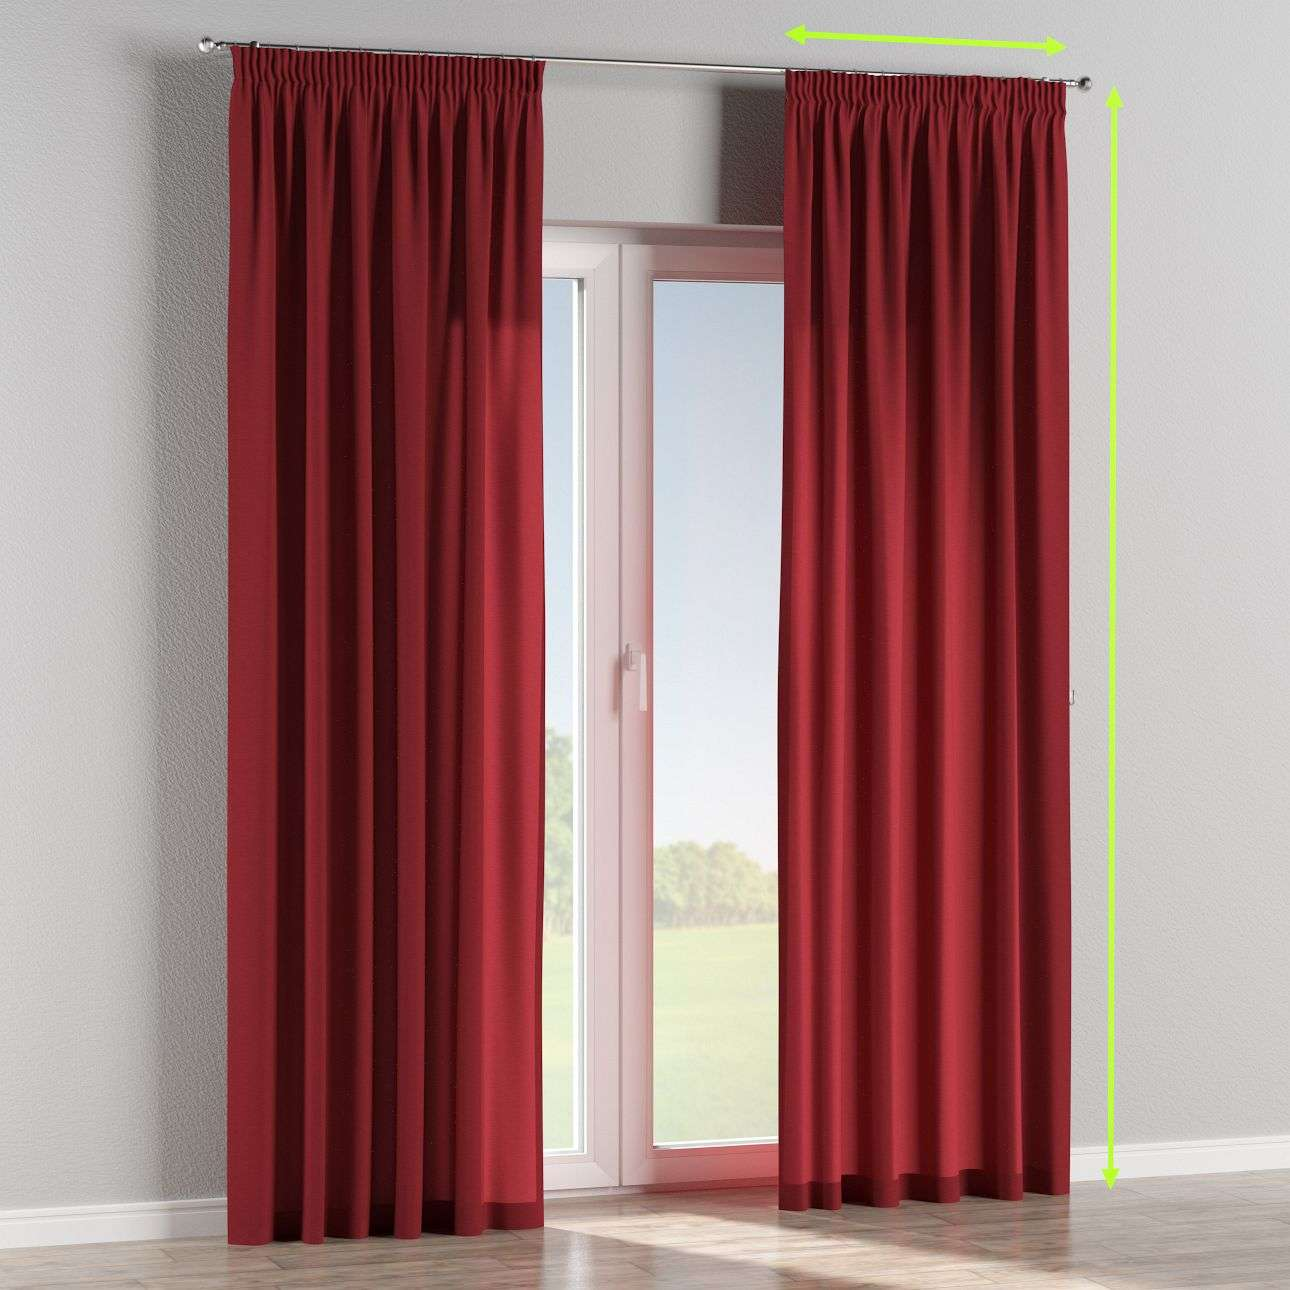 Pencil pleat lined curtains in collection Jupiter, fabric: 127-15